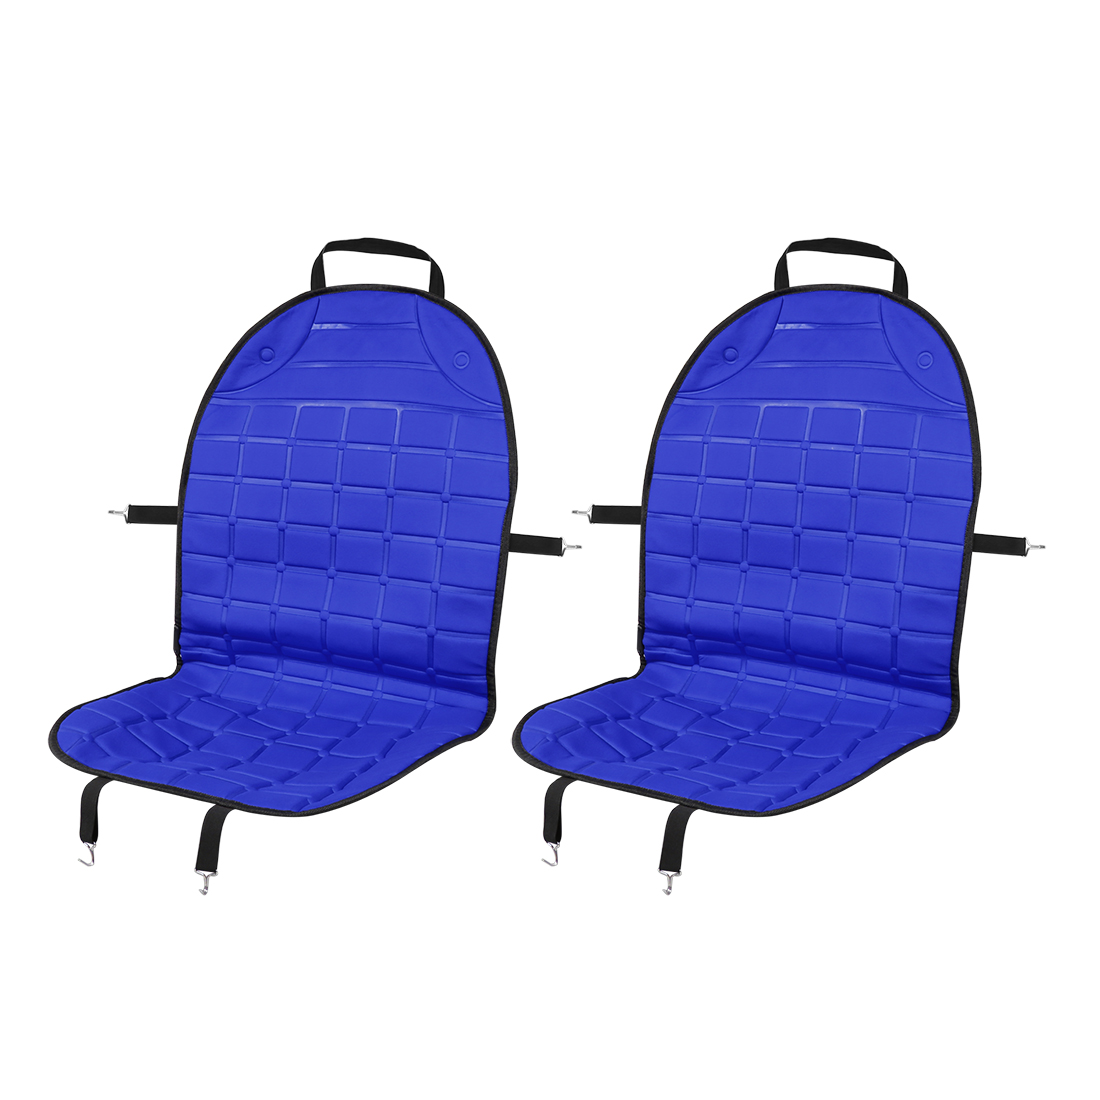 2pcs Universal DC 12V Thickening Heated Car Front Seat Heater Cushion Warmer Pad